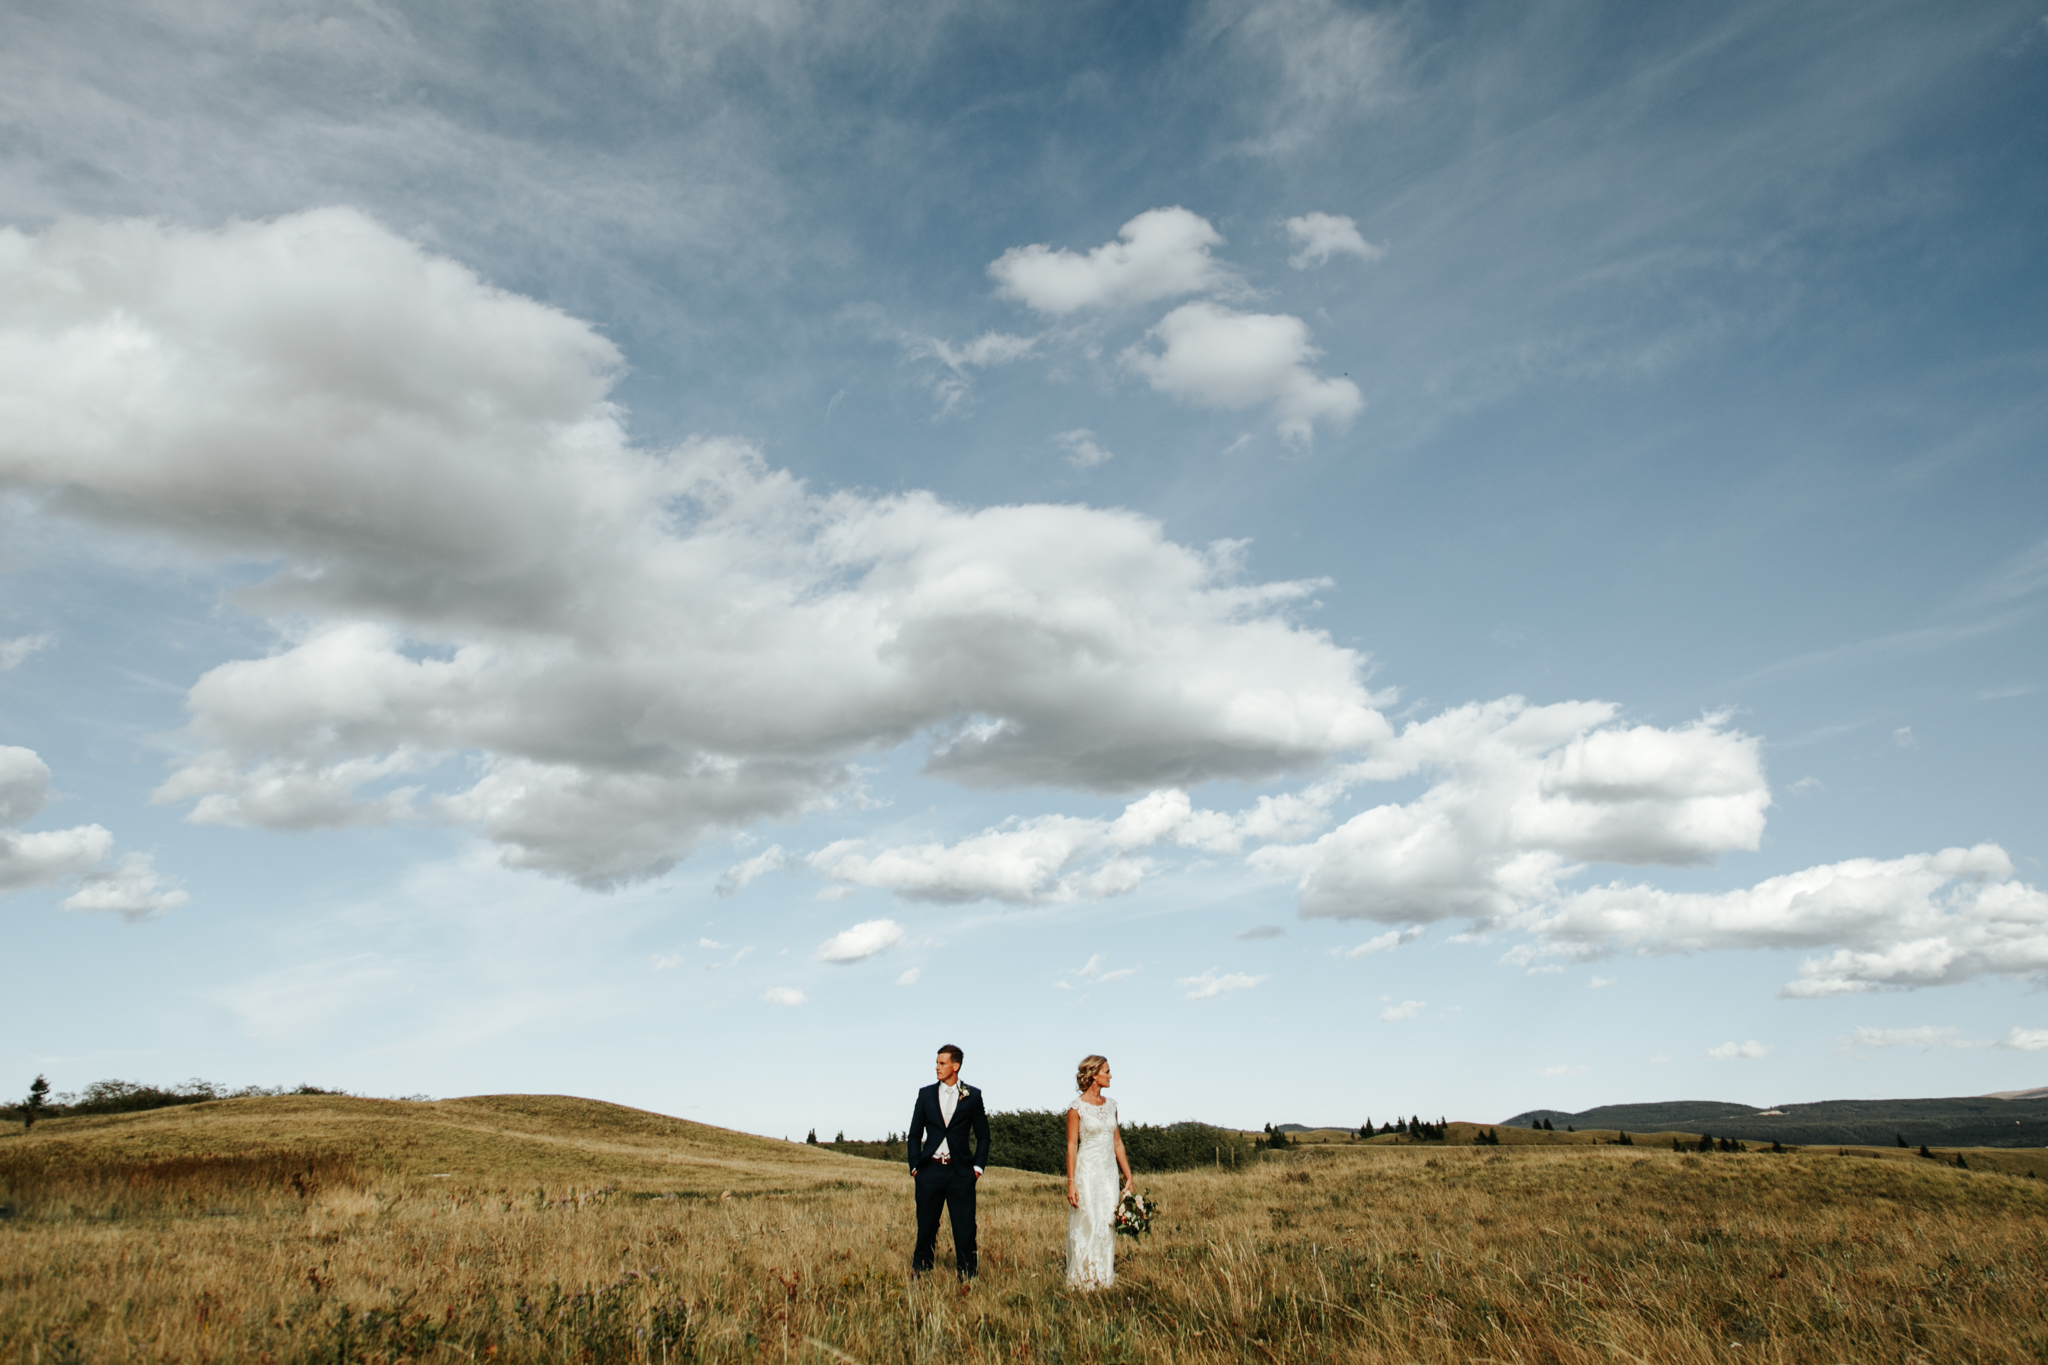 lethbridge-wedding-photographer-love-and-be-loved-photography-waterton-lakes-mountain-picture-image-photo-5.jpg